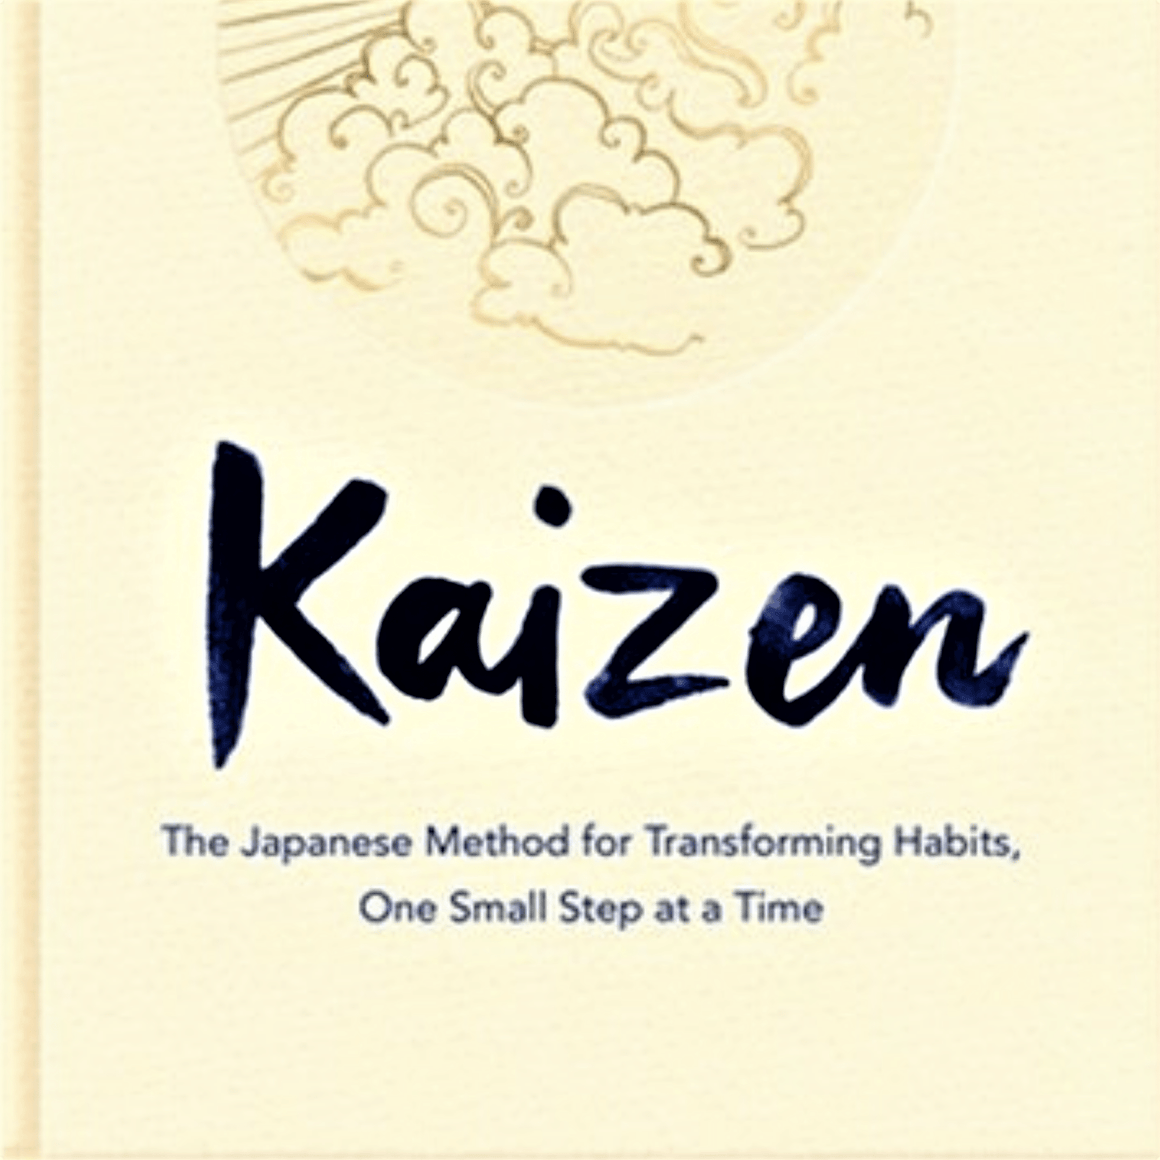 KAIZEN: THE JAPANESE METHOD FOR TRANSFORMING HABITS, ONE SMALL STEP AT A TIME BY SARAH HARVEY